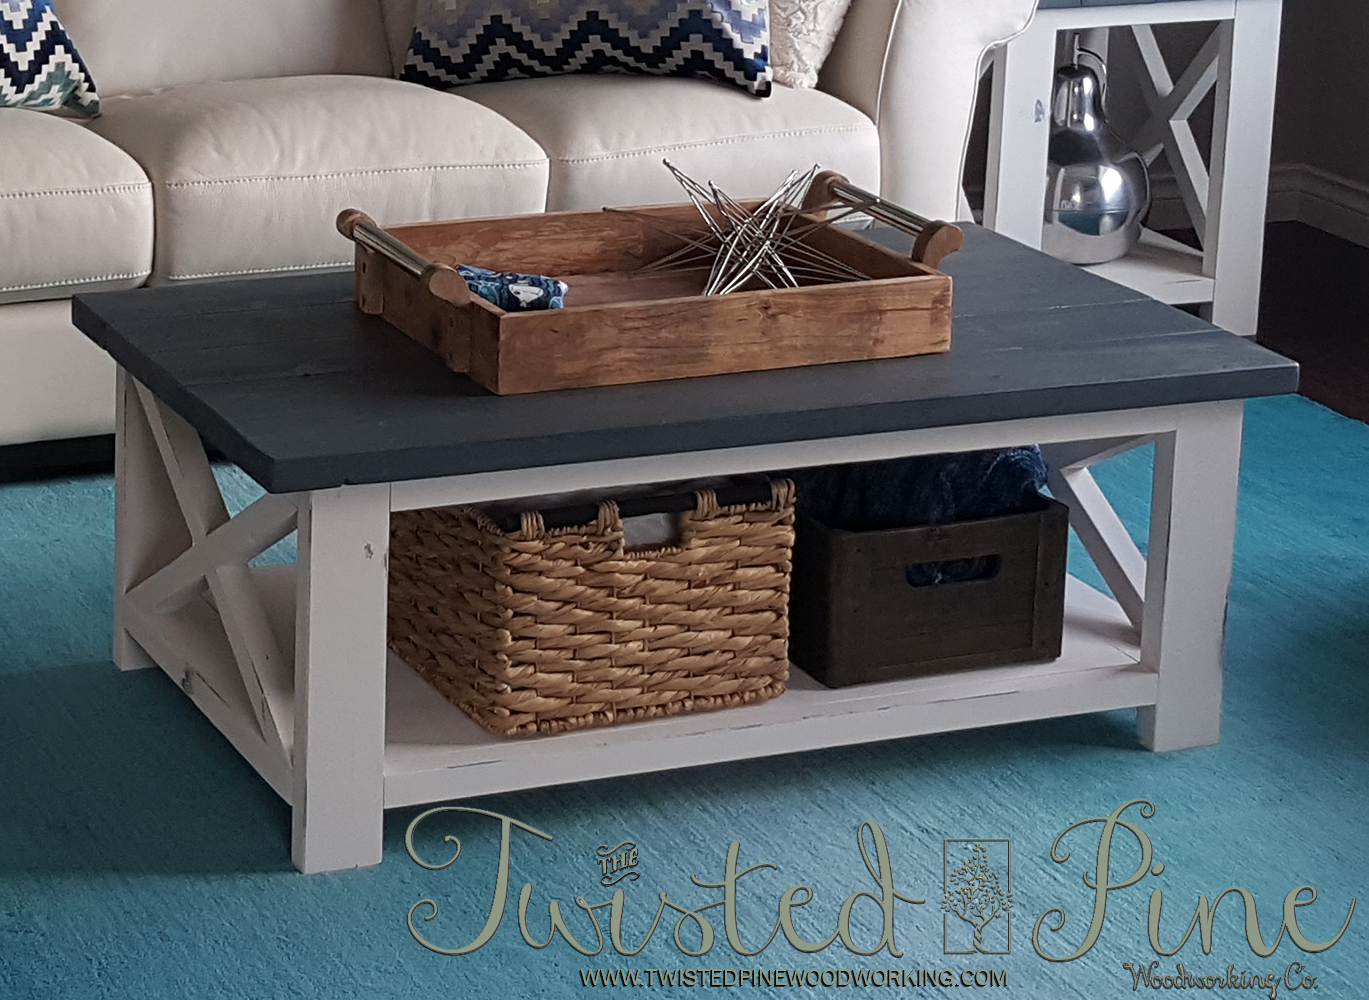 rustic coffee table the twisted pine woodworking product end distressed white paint navy bedside lazy boy furniture website styles foot sofa small console narrow with storage oval